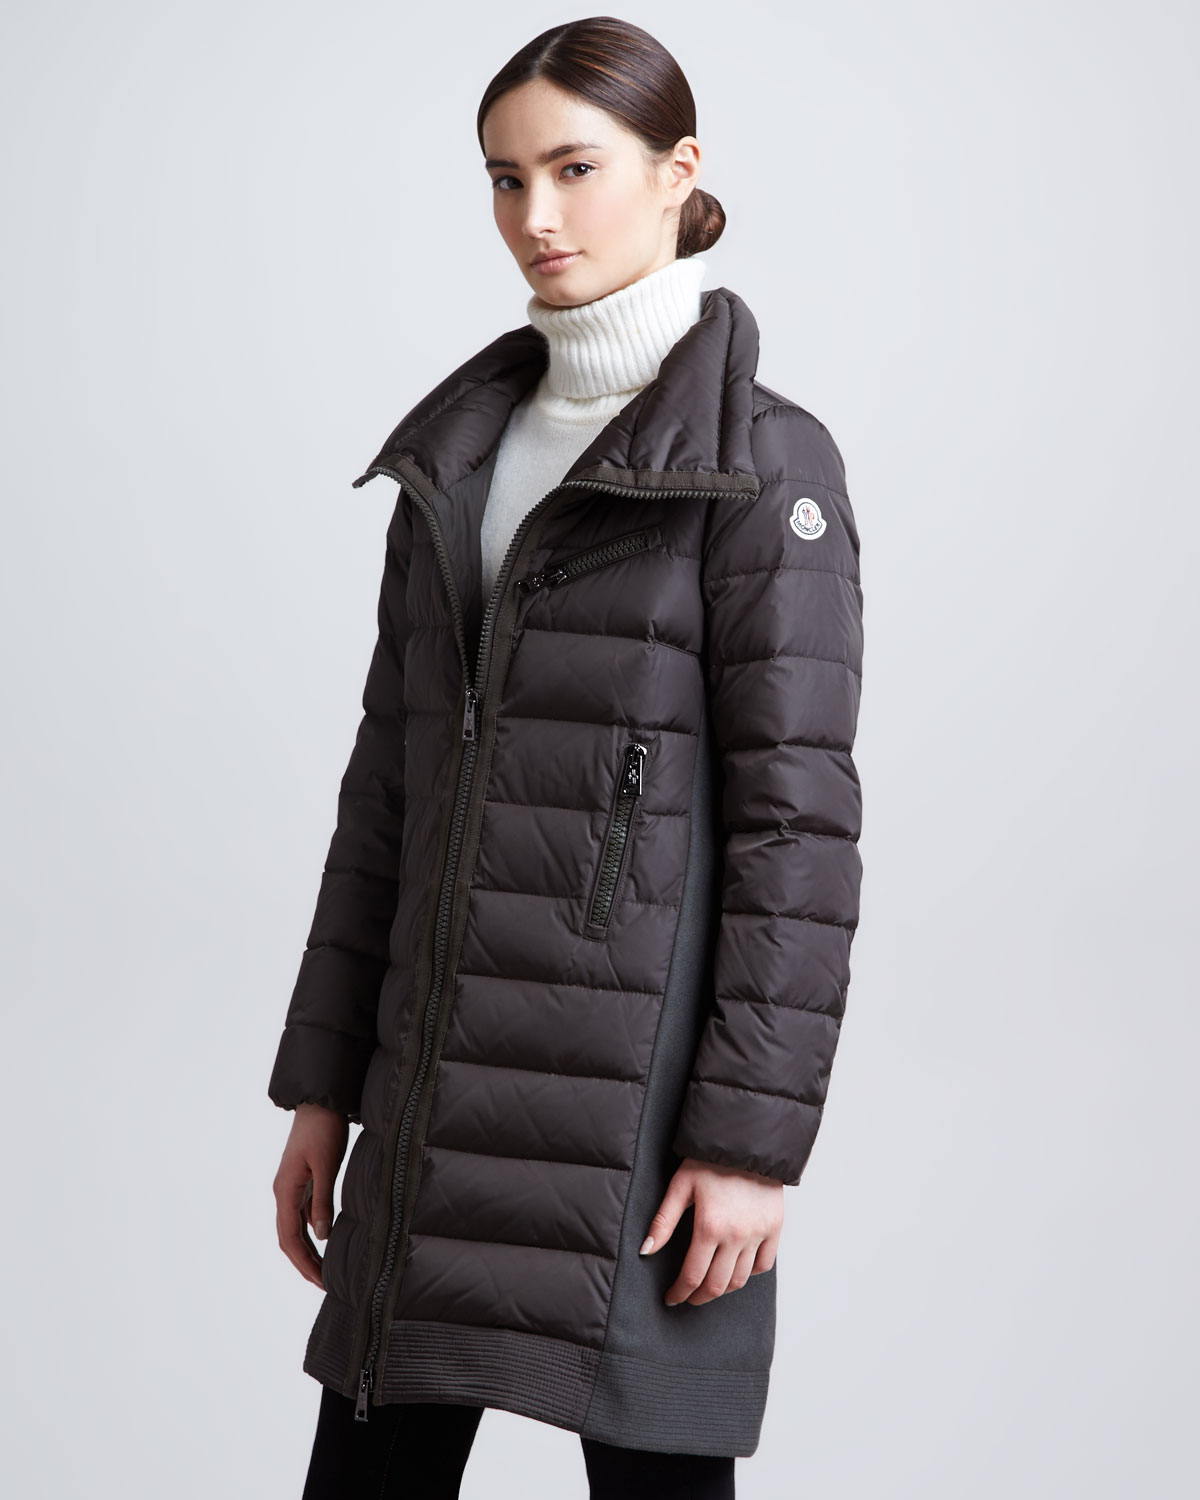 long puffer coat gallery lgqizpd